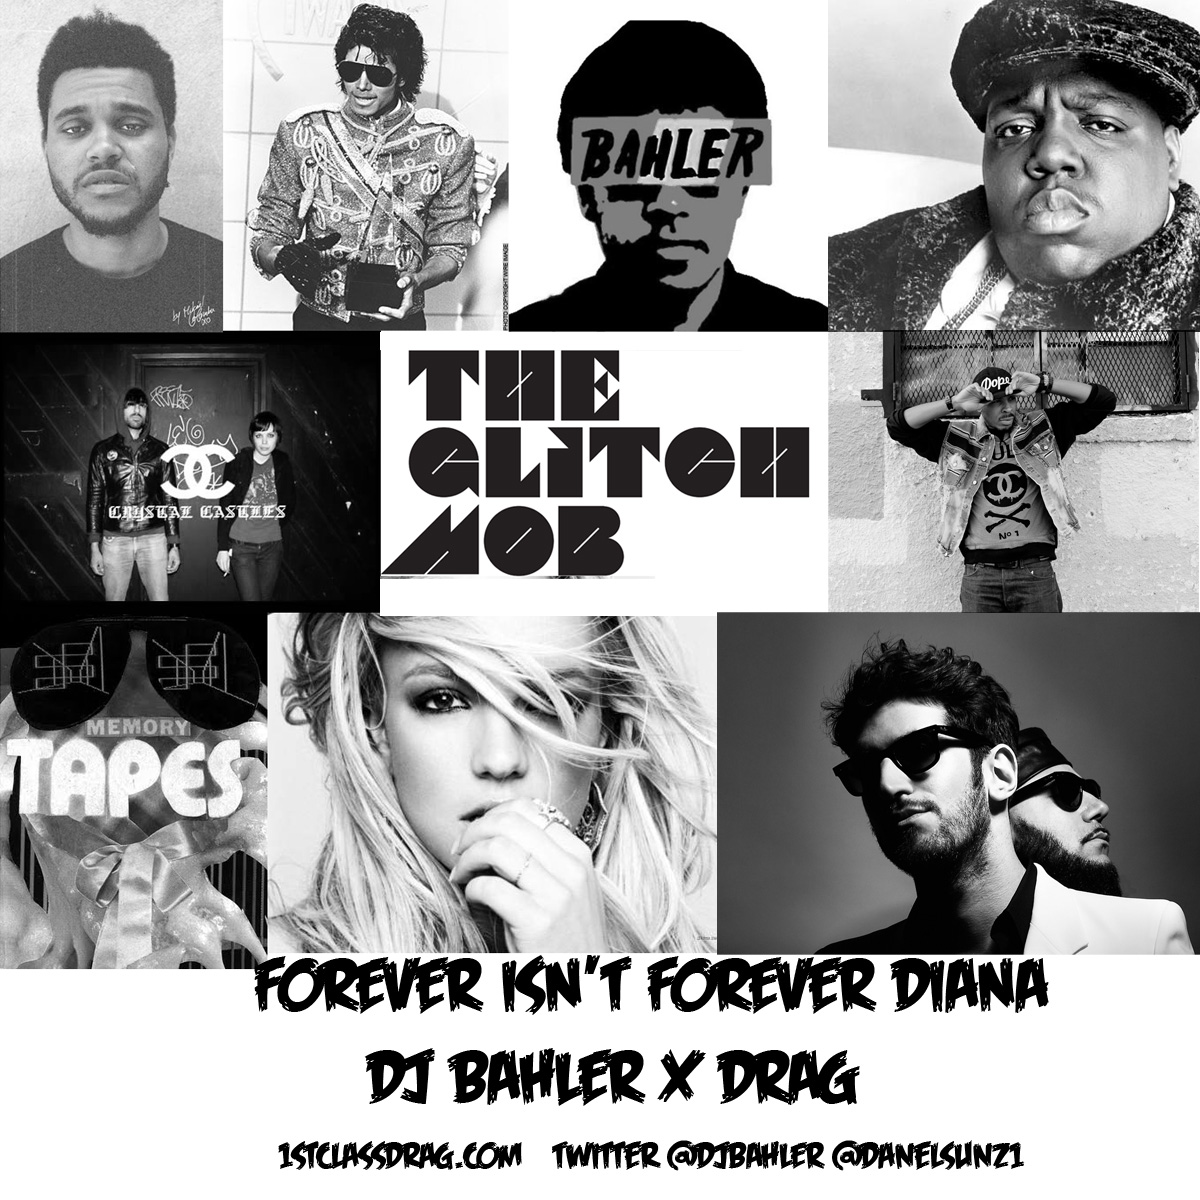 DJ Bahler x DRAG – Forever Isn't Forever Diana – By PenDragon